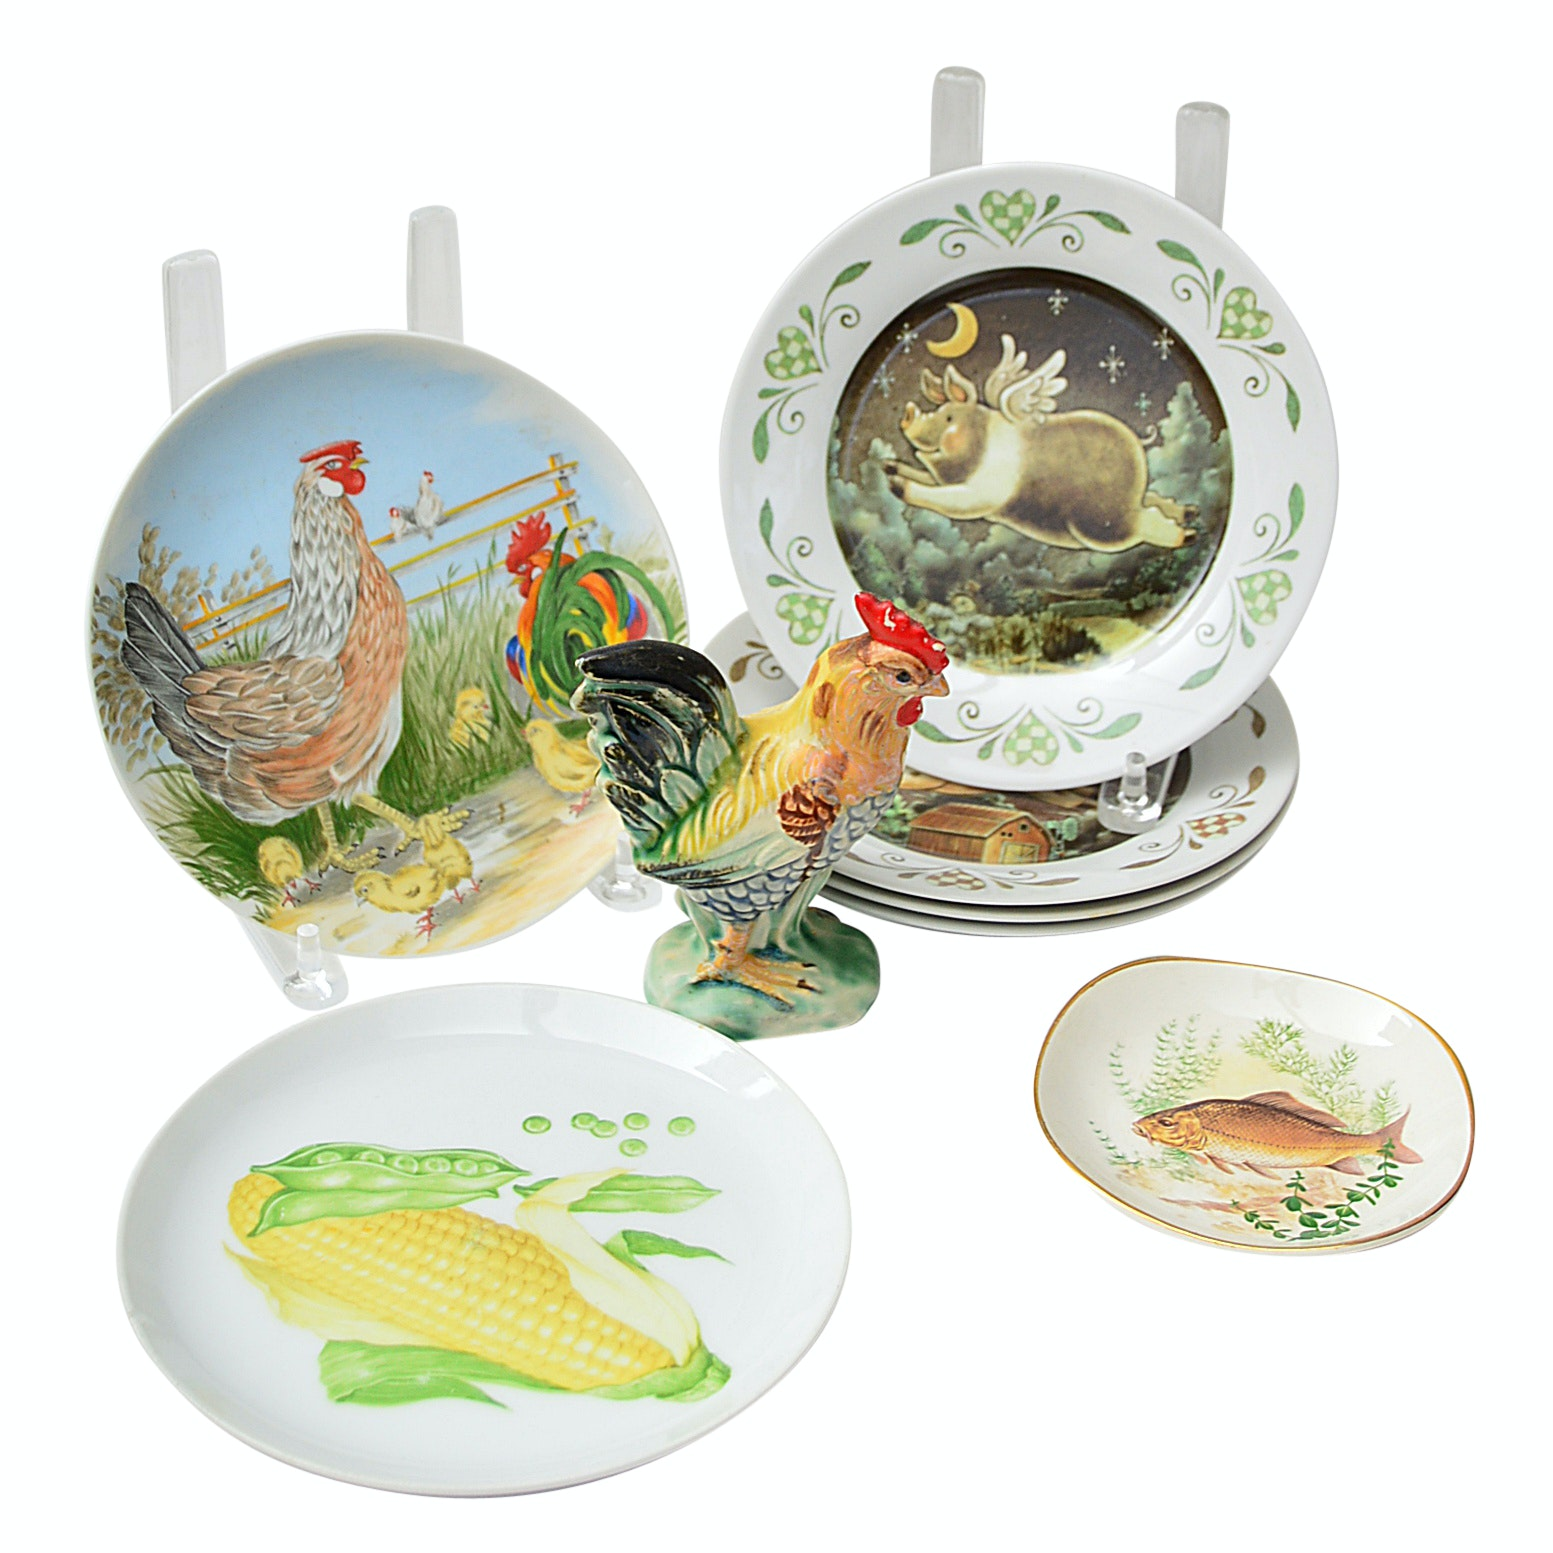 Set of Flying Pig Dessert Plates, Brooks Brothers Fish Plate and More